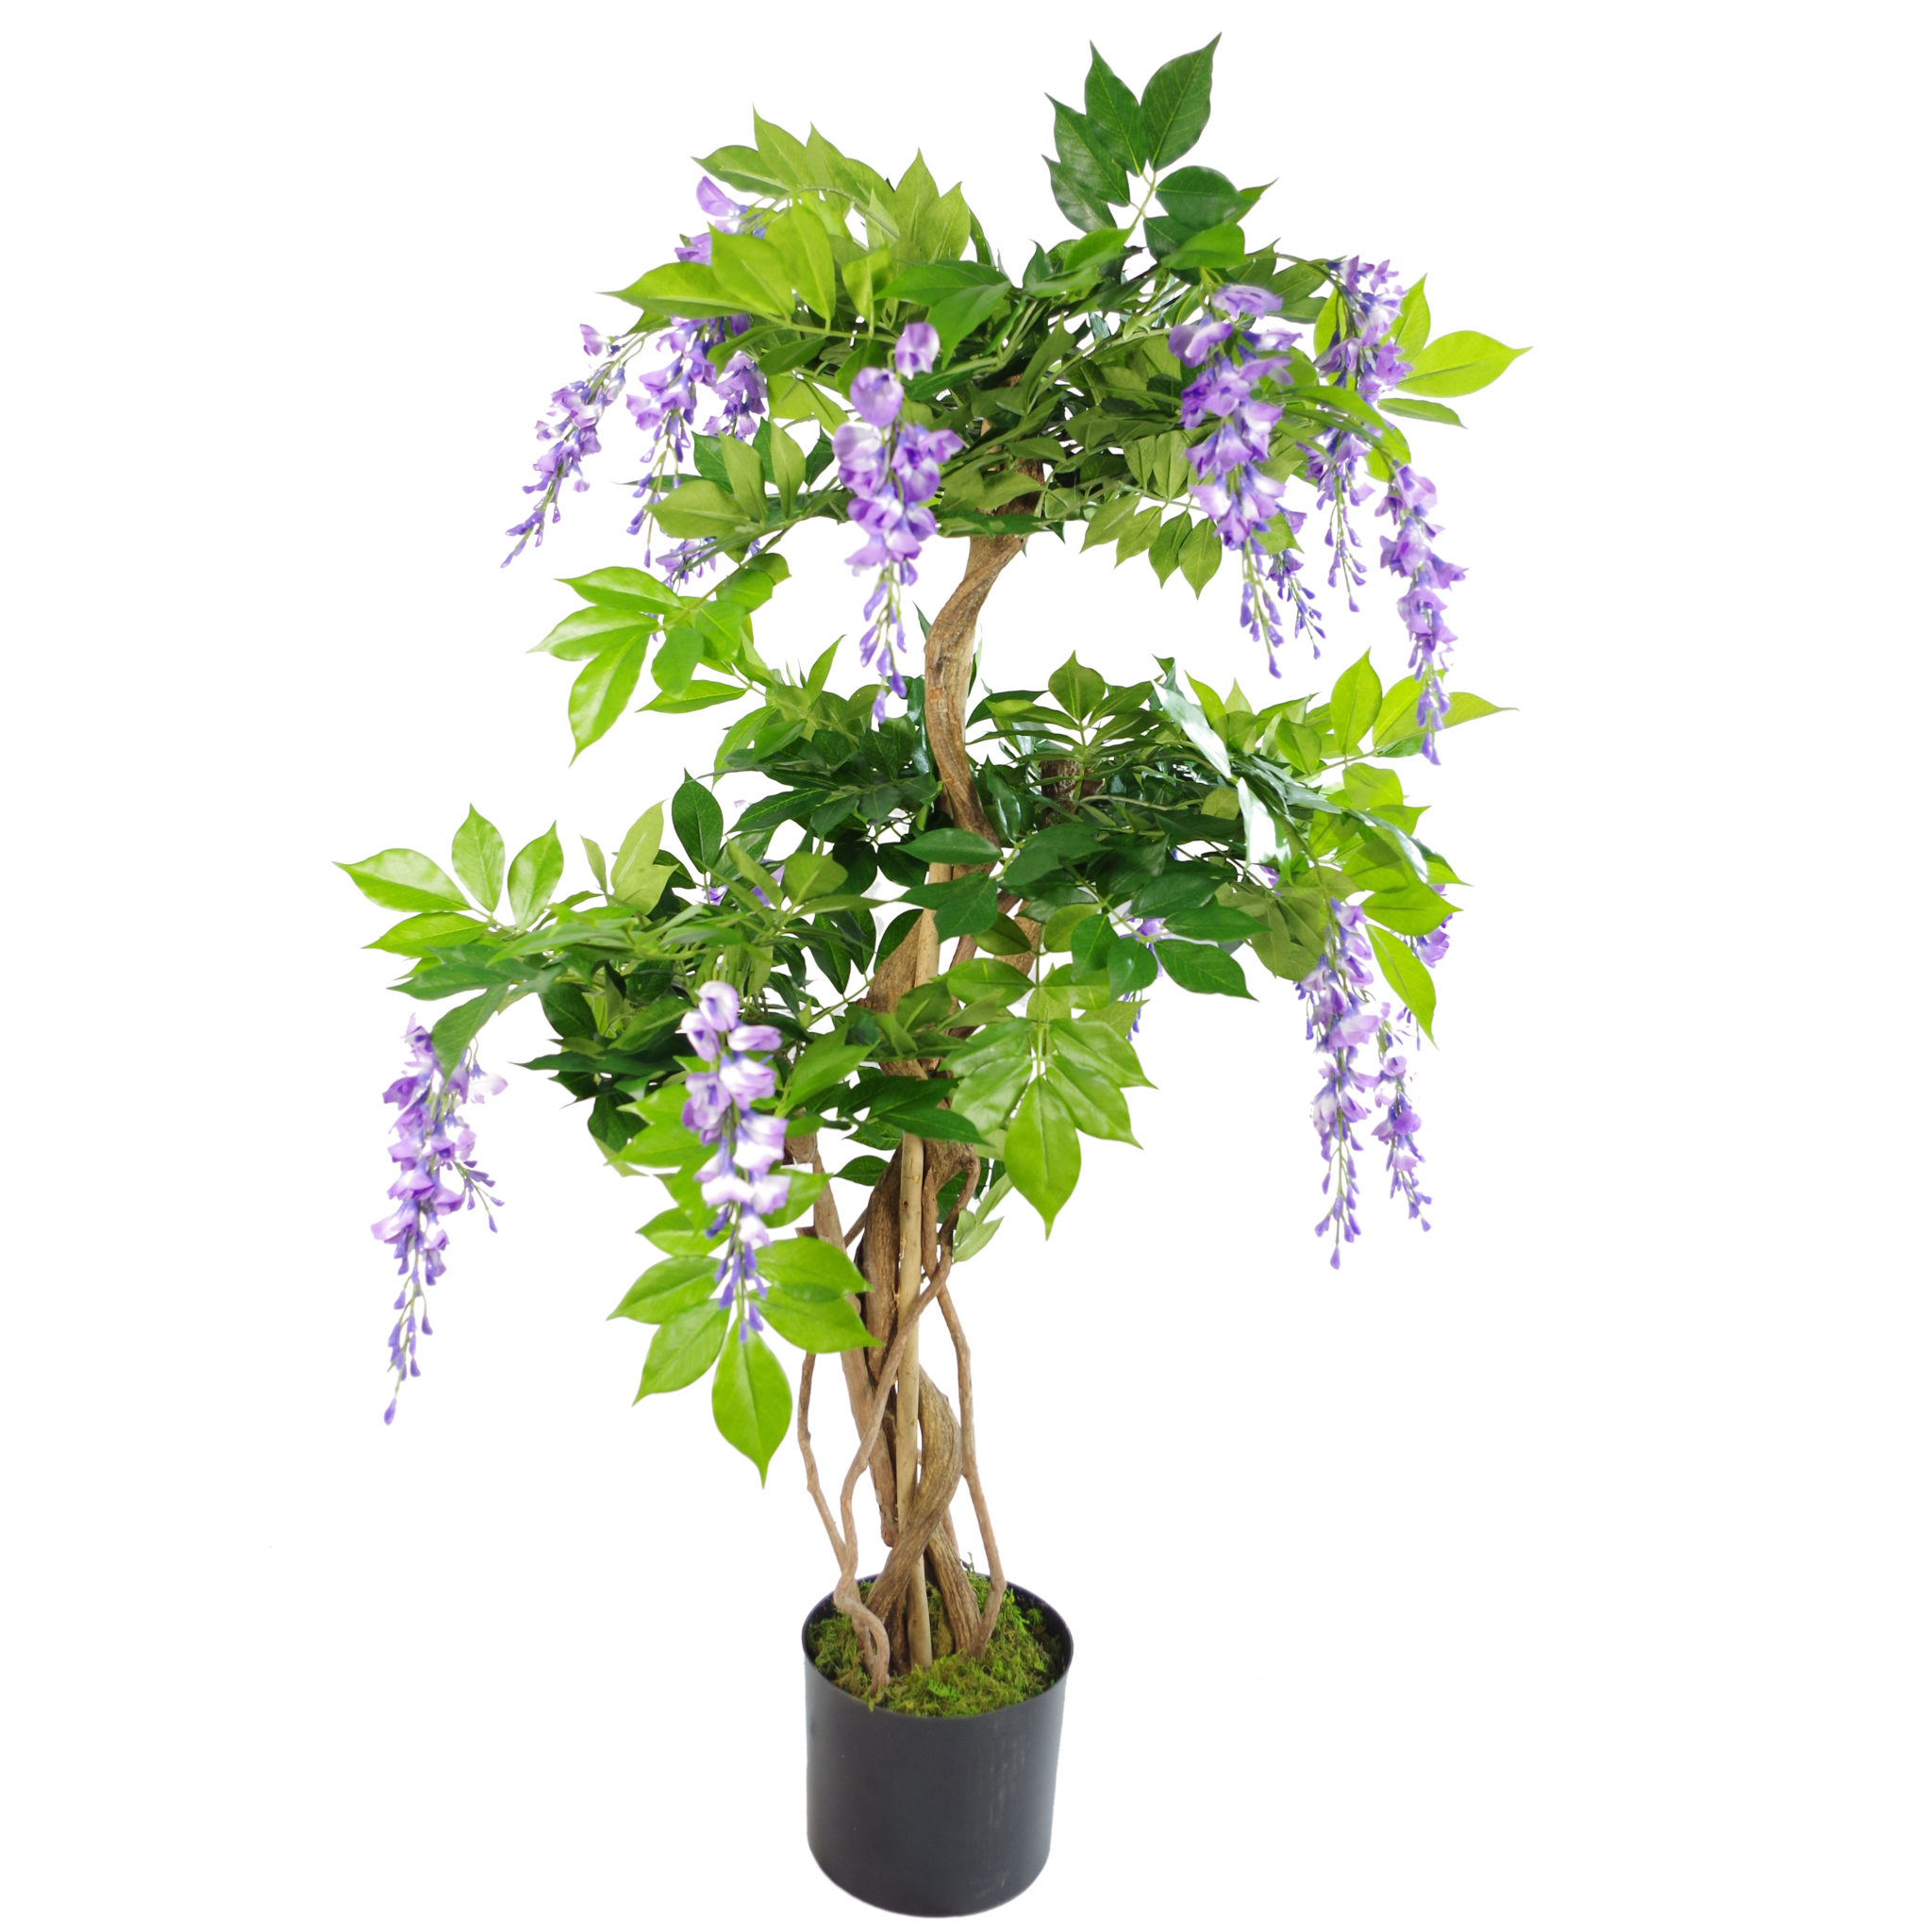 110cm Wisteria Tree Plant Artificial